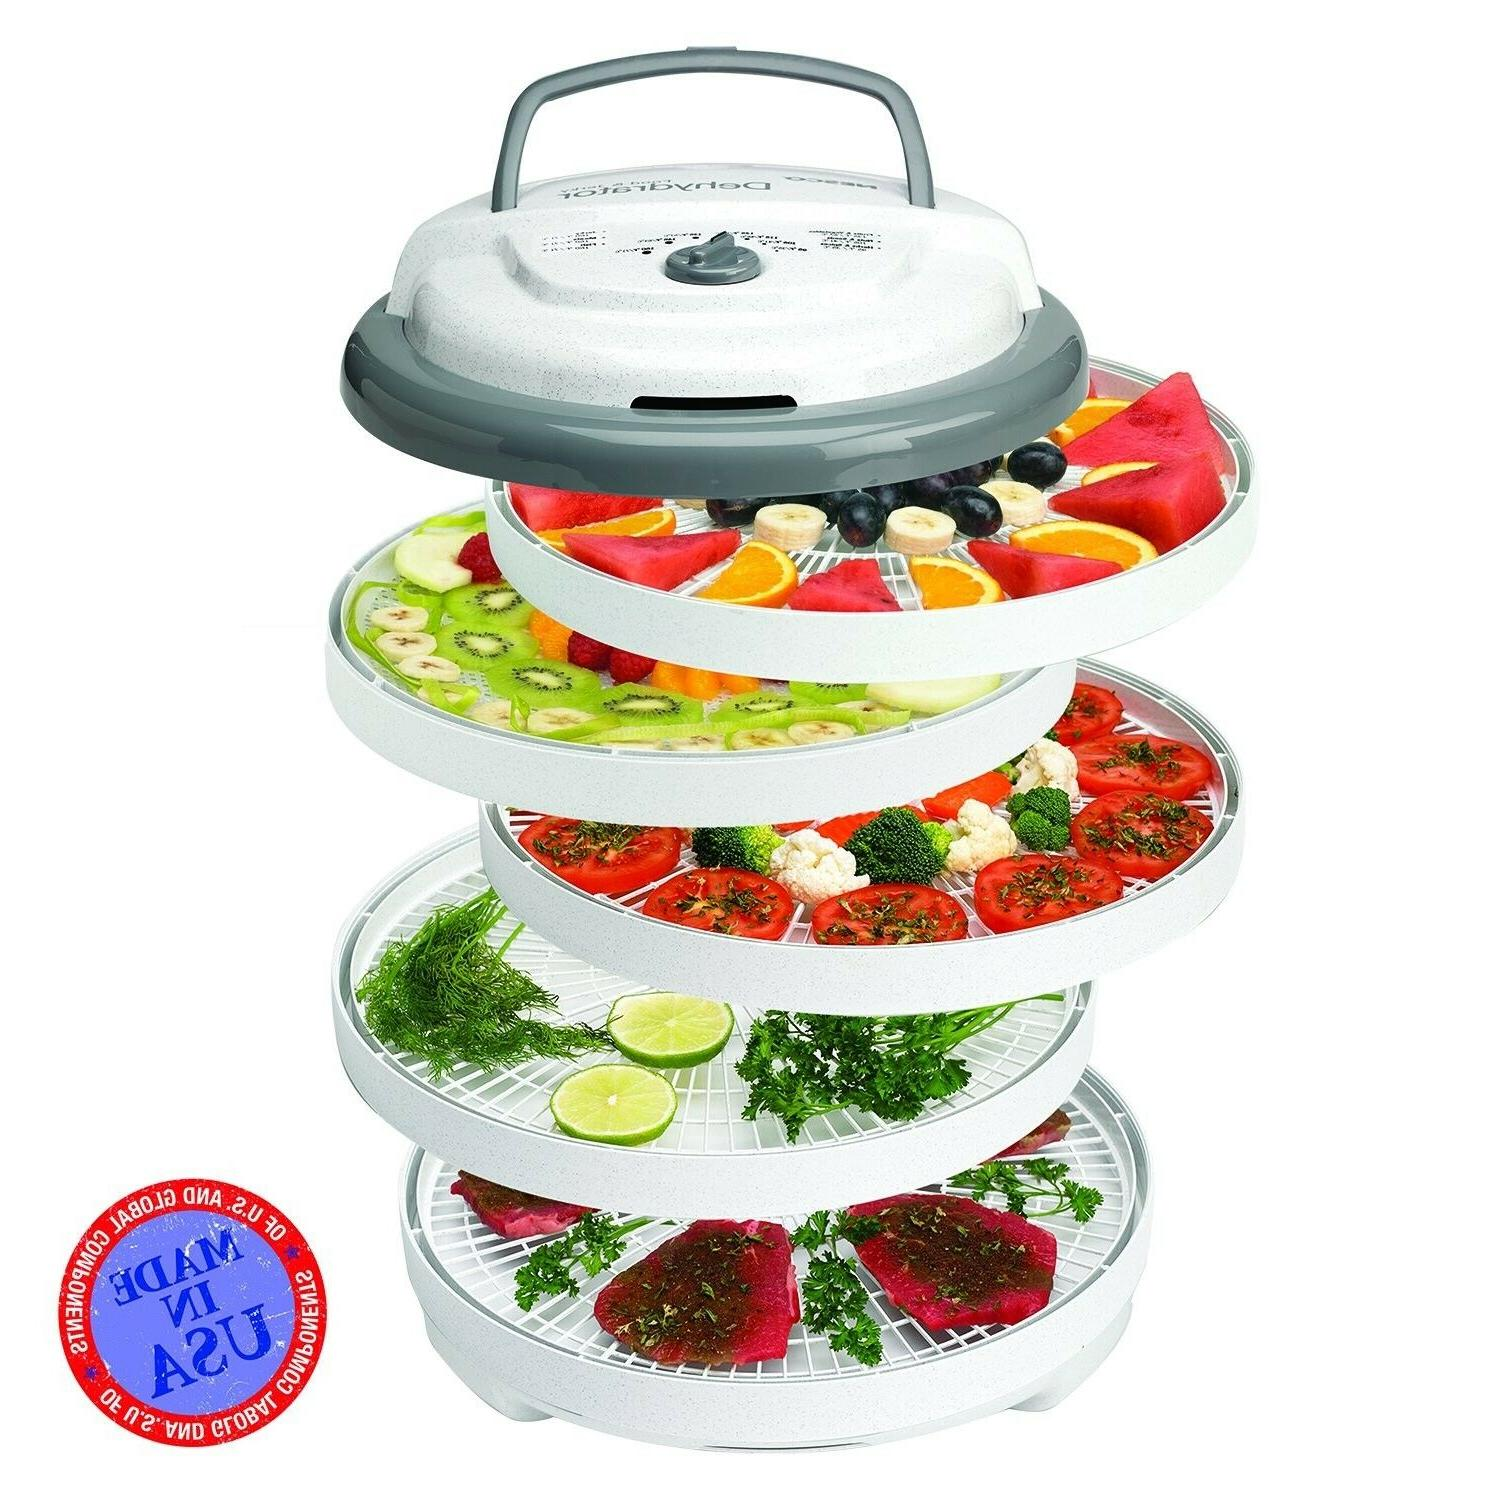 SALE NEW - Dehydrator,